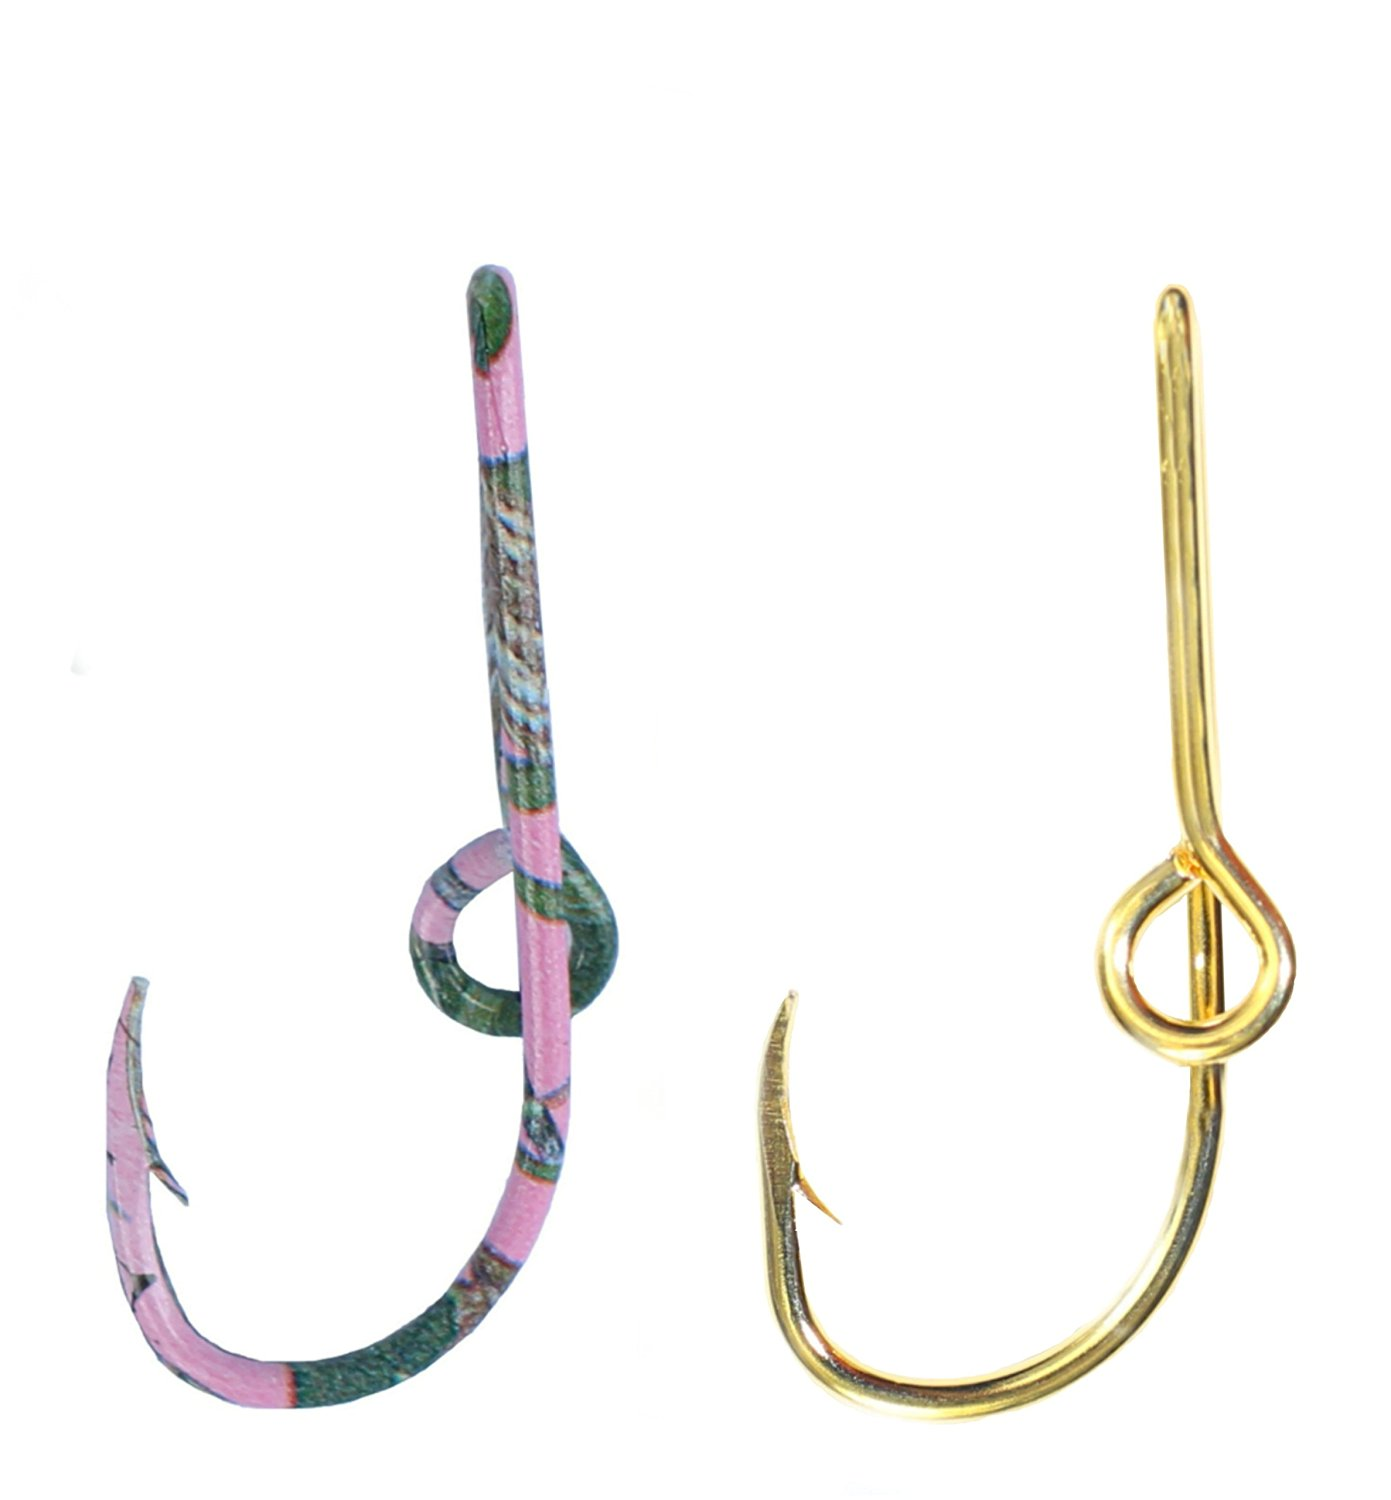 Two Eagle Claw Pink & Camo and Gold Hat Hook Fish hook for Hat Fish Hook Money/Tie Clasp - Set of Two Hooks one Pink & Camo and one Gold